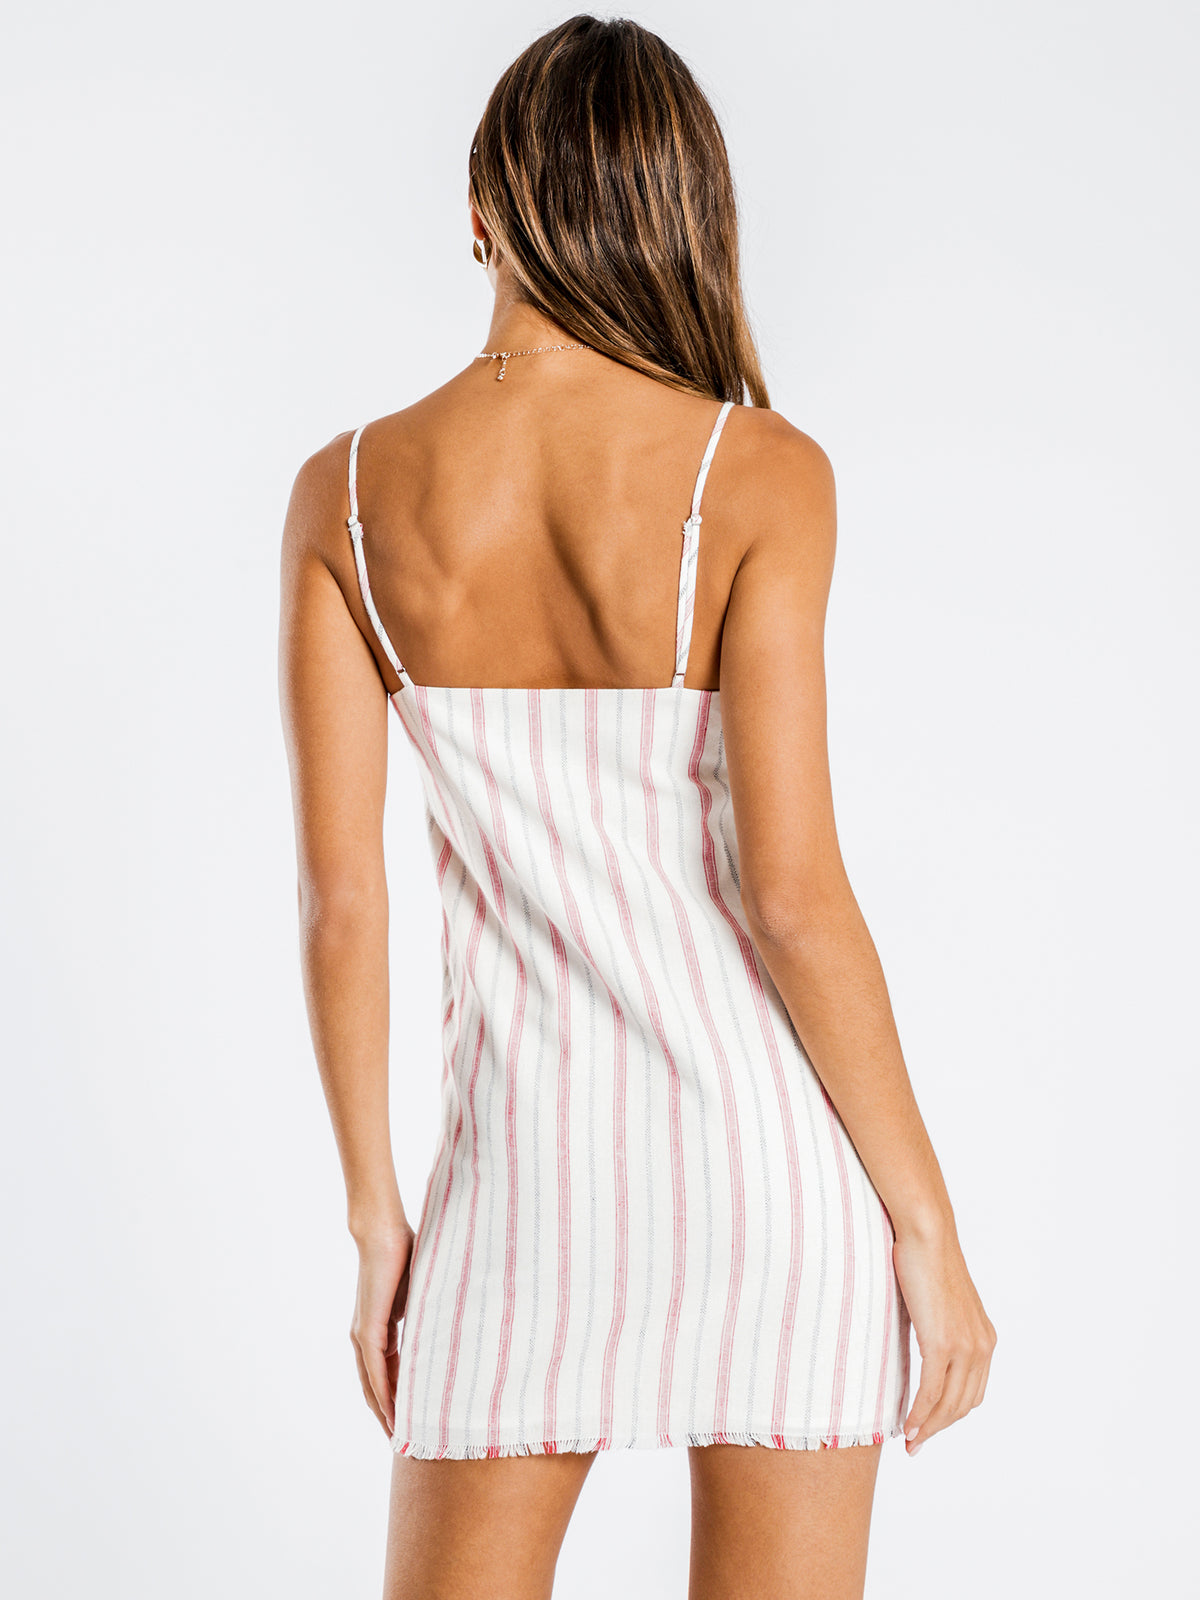 Matilda Dress in Red Stripe